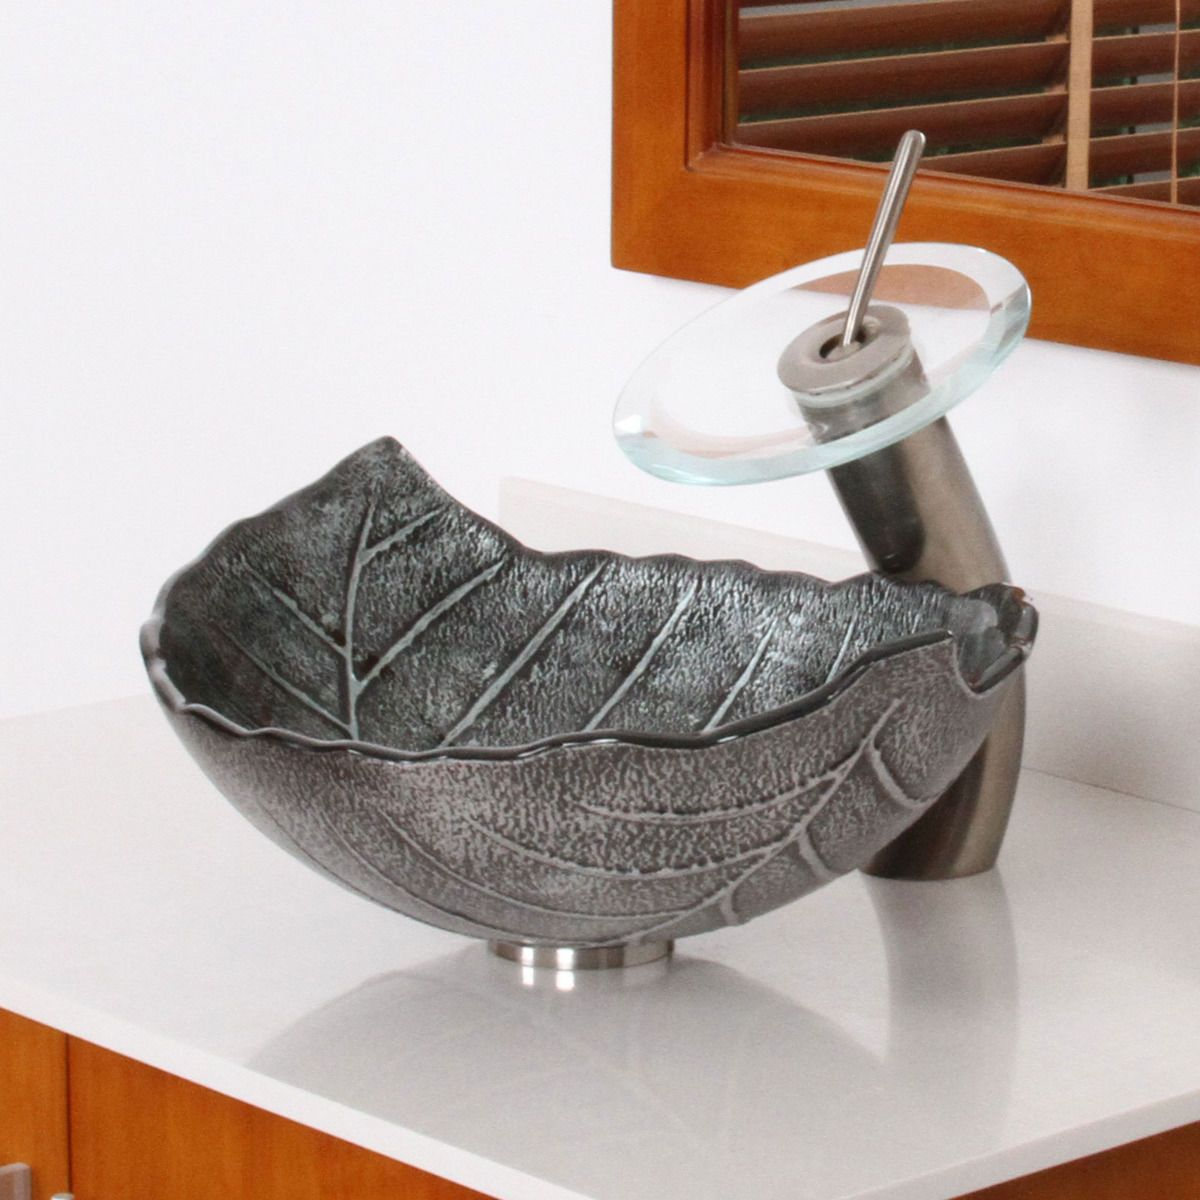 Bathroom Winter Leaves Design Glass Vessel Sink Nickel Waterfall Faucet  Combo | EBay